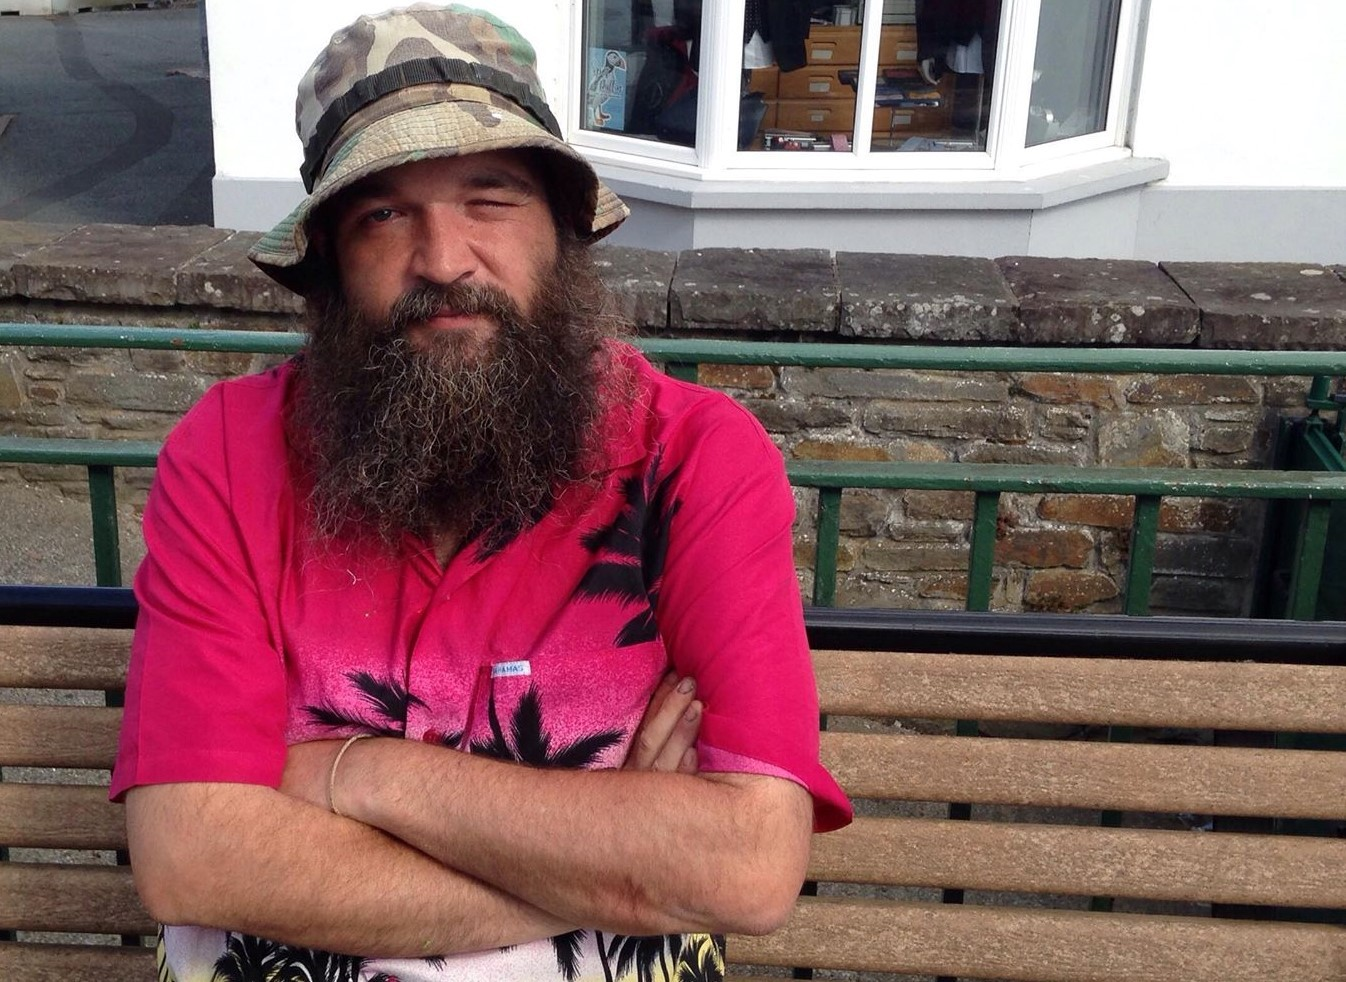 'It's a community I'm proud to be part of,' busker slammed in letter praises Pembrokeshire people's support